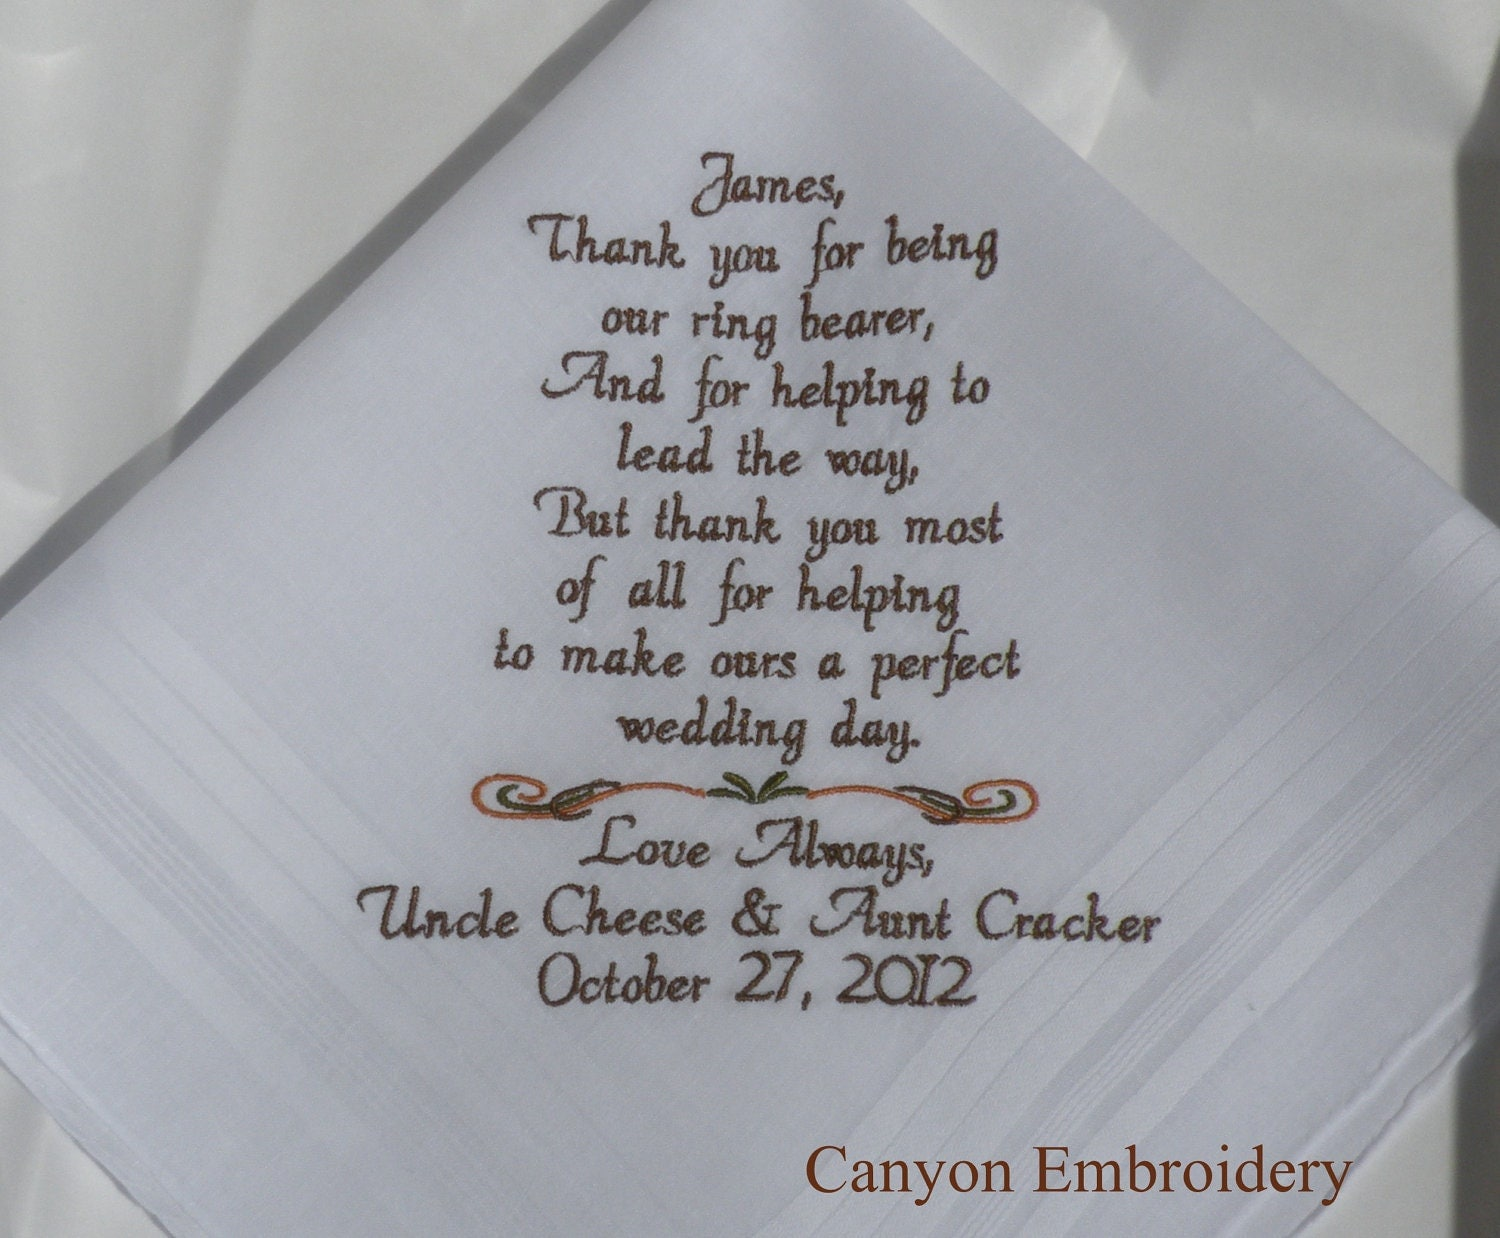 Funny Wedding Gift Quotes : Wedding Gift Mother InLaw Embroider ed Wedding hankerchief - I am ...